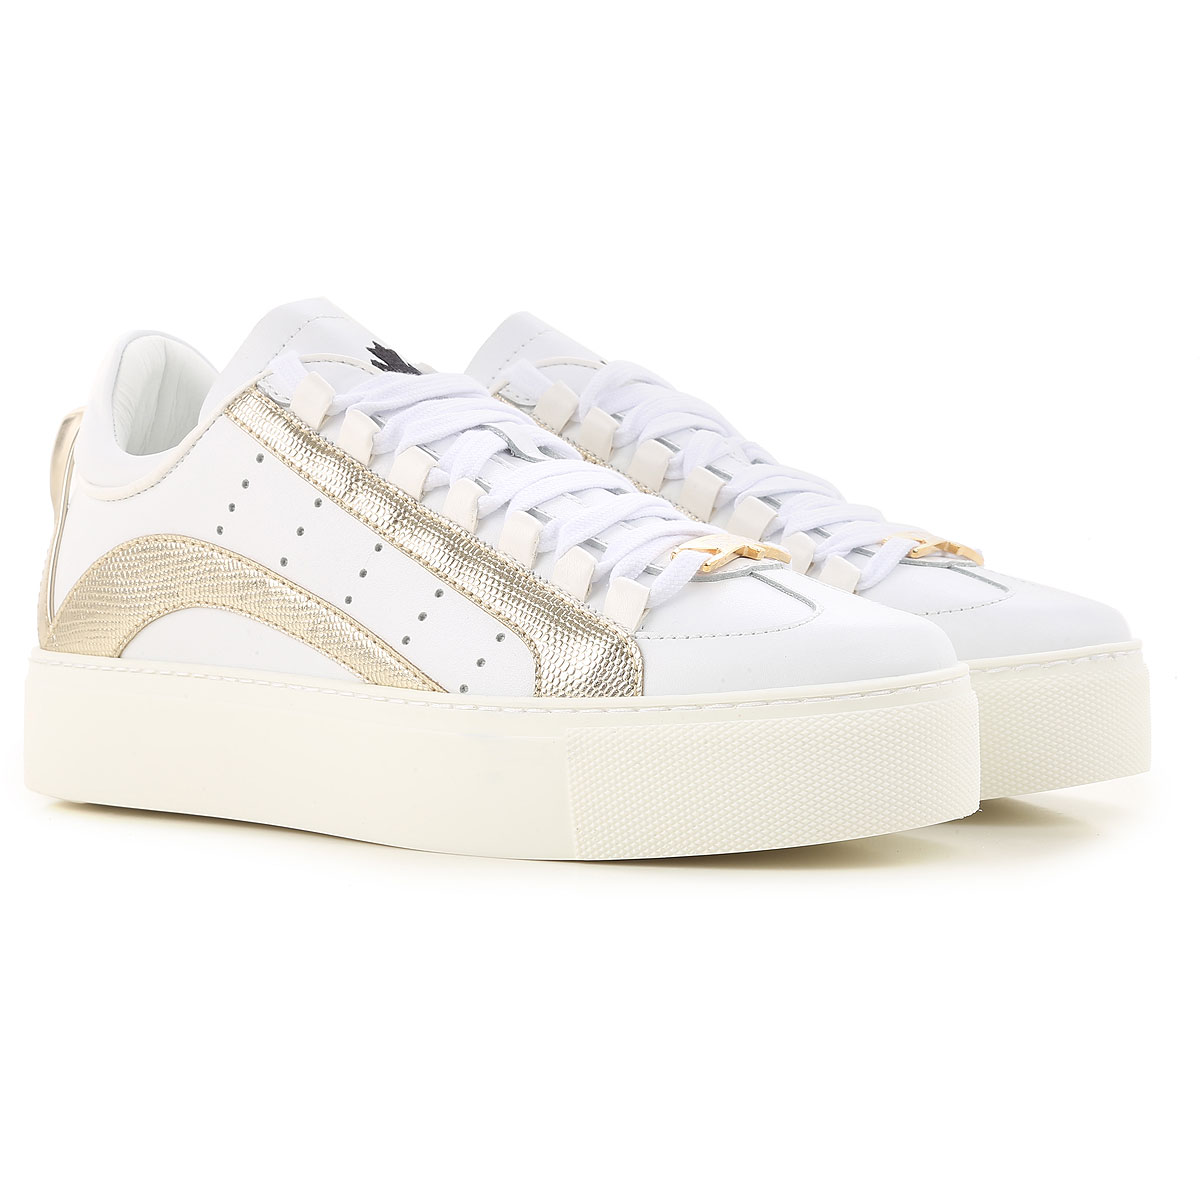 bf36f70ce Womens Shoes Dsquared2, Style code: snw0003-10650001-m517